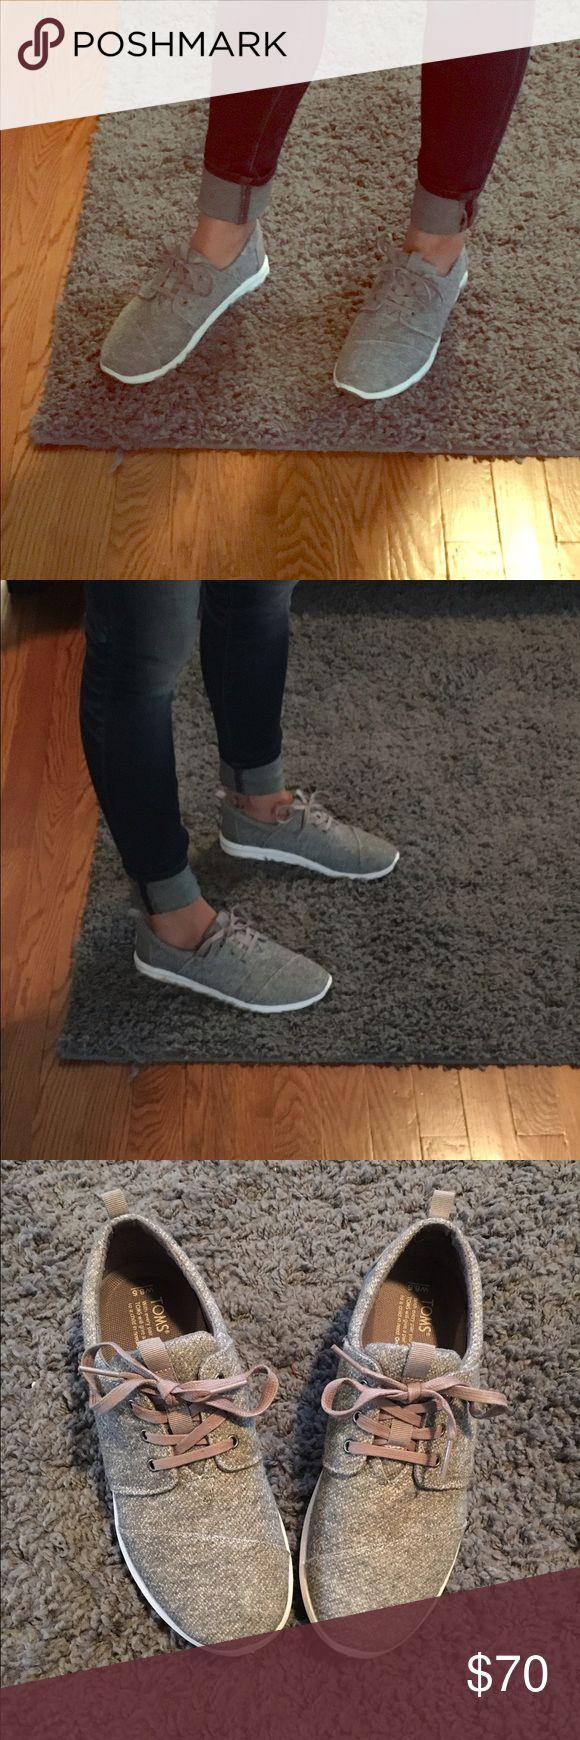 Women's Tom Del Ray Shoes Only wore one time. LOVE these, but they are too tight. Bought from Journeys for $80. Size 8.5 but would fit best for someone who is a 7.5 or 8. TOMS Shoes Athletic Shoes